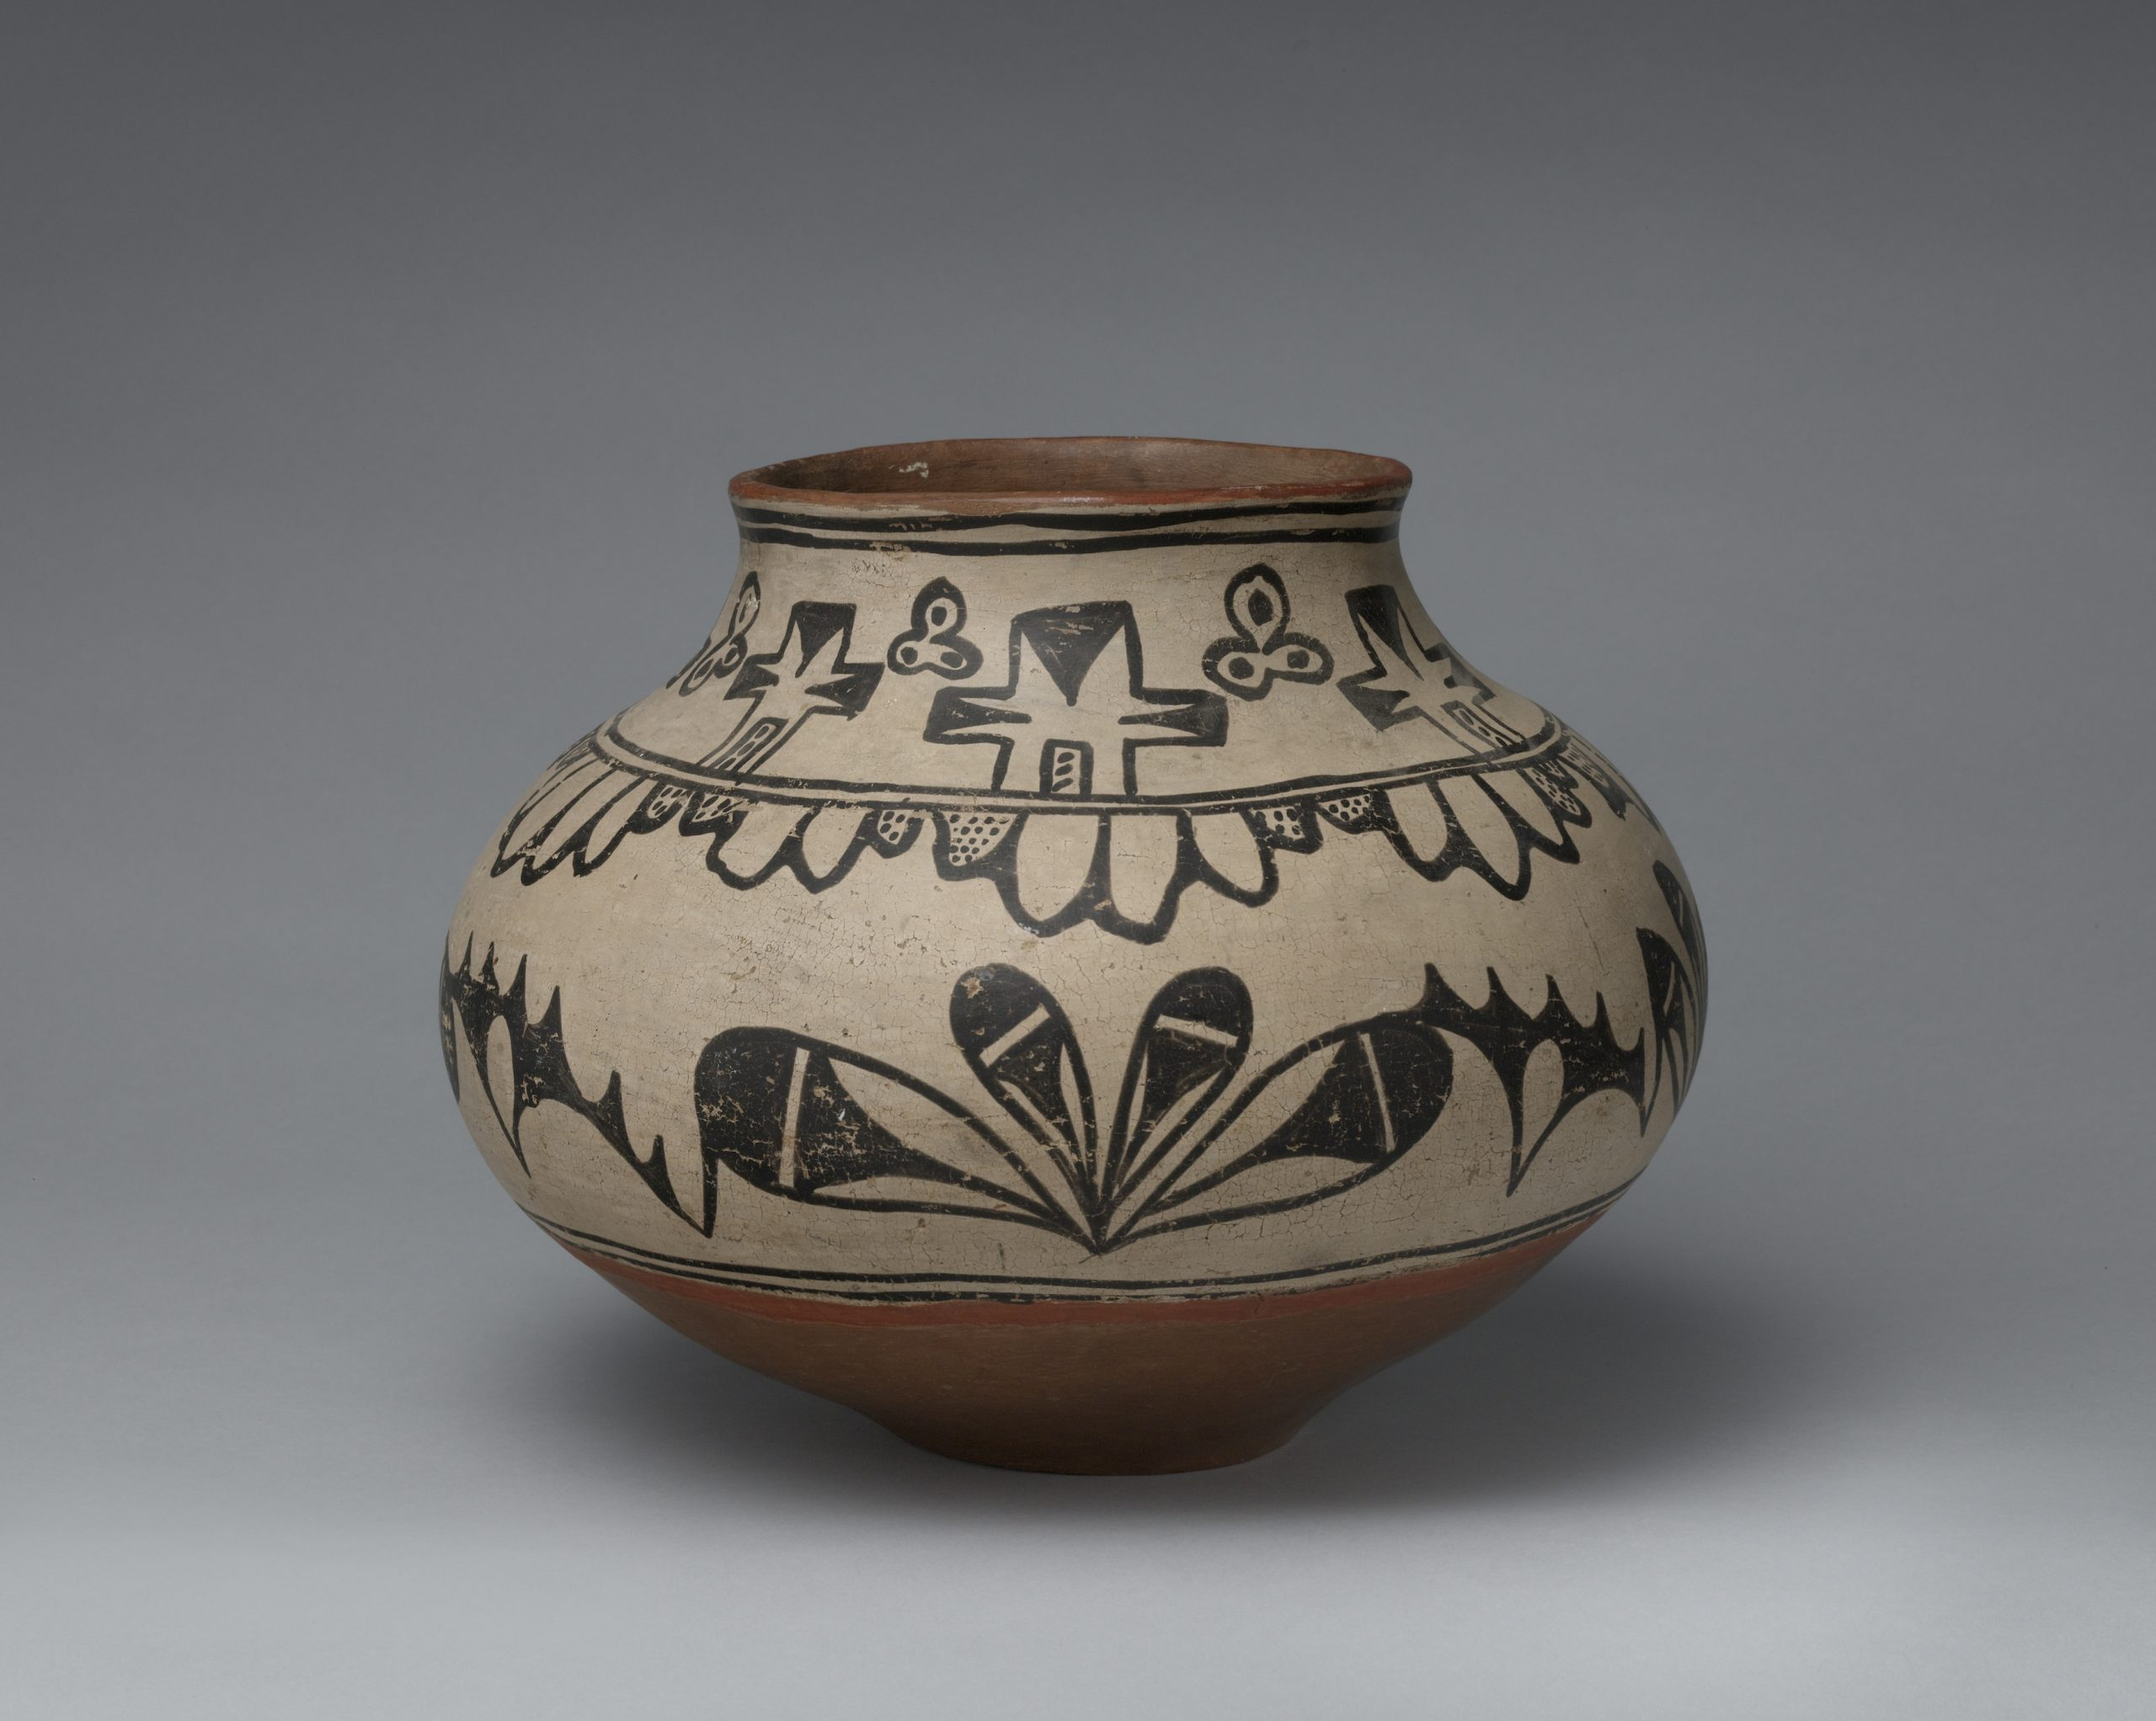 A Tesuque jar with black designs.